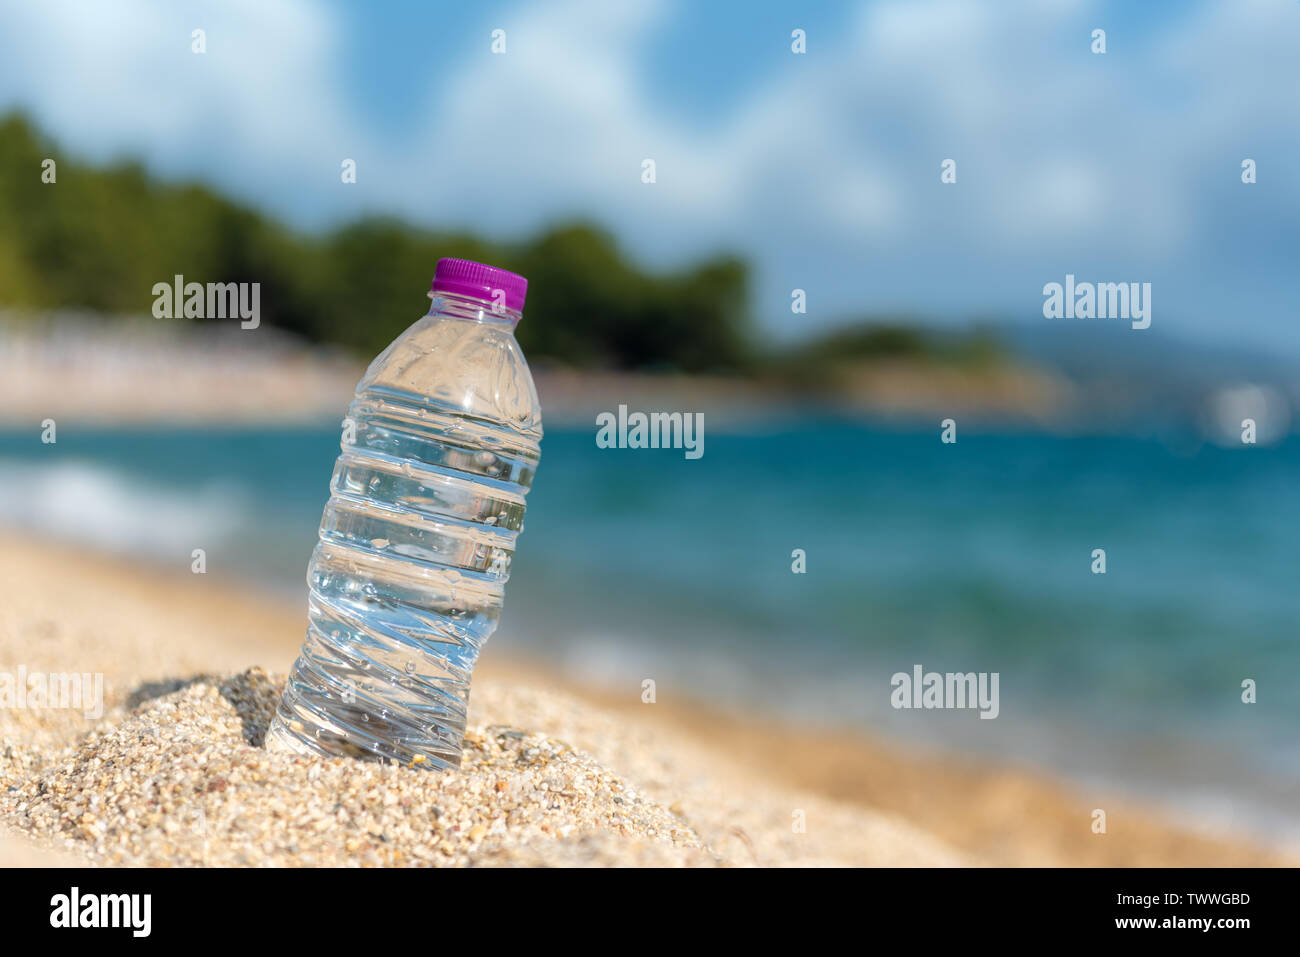 Bottle of cold fresh water on beach sand. Summer concept - Stock Image